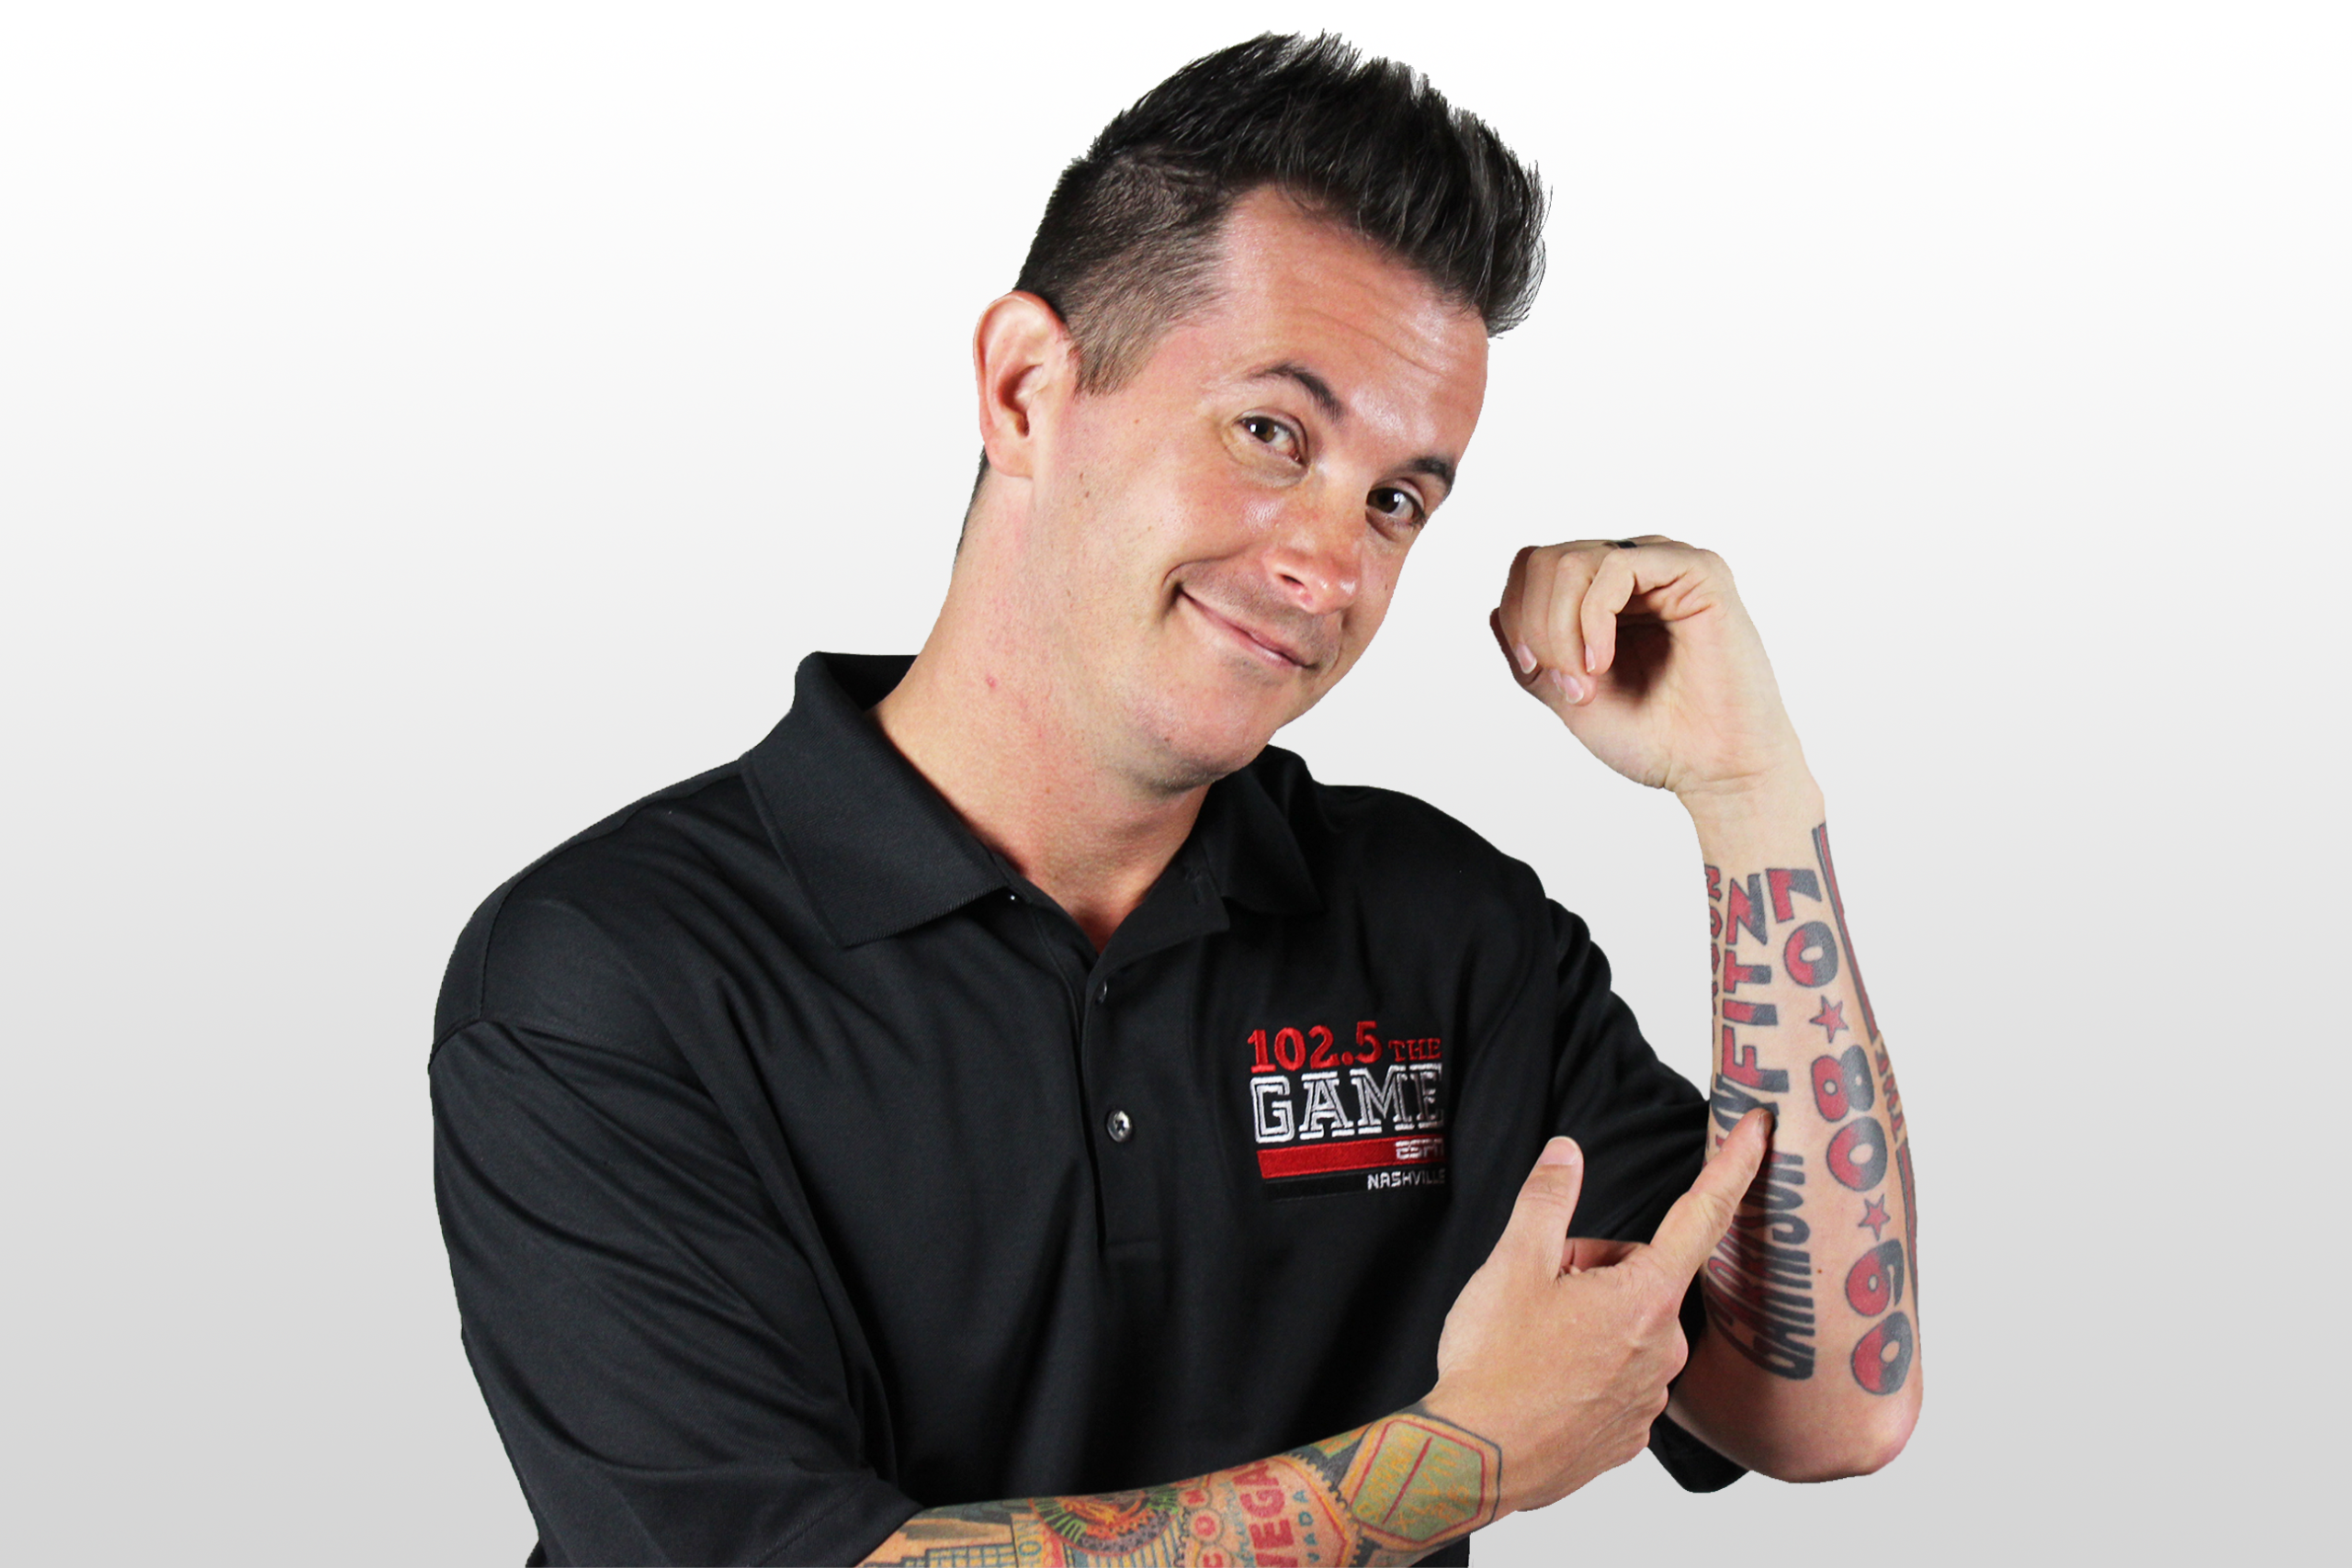 ESPN 102.5 The Game's Jason Fitz to join ESPN Radio national broadcast in 2018